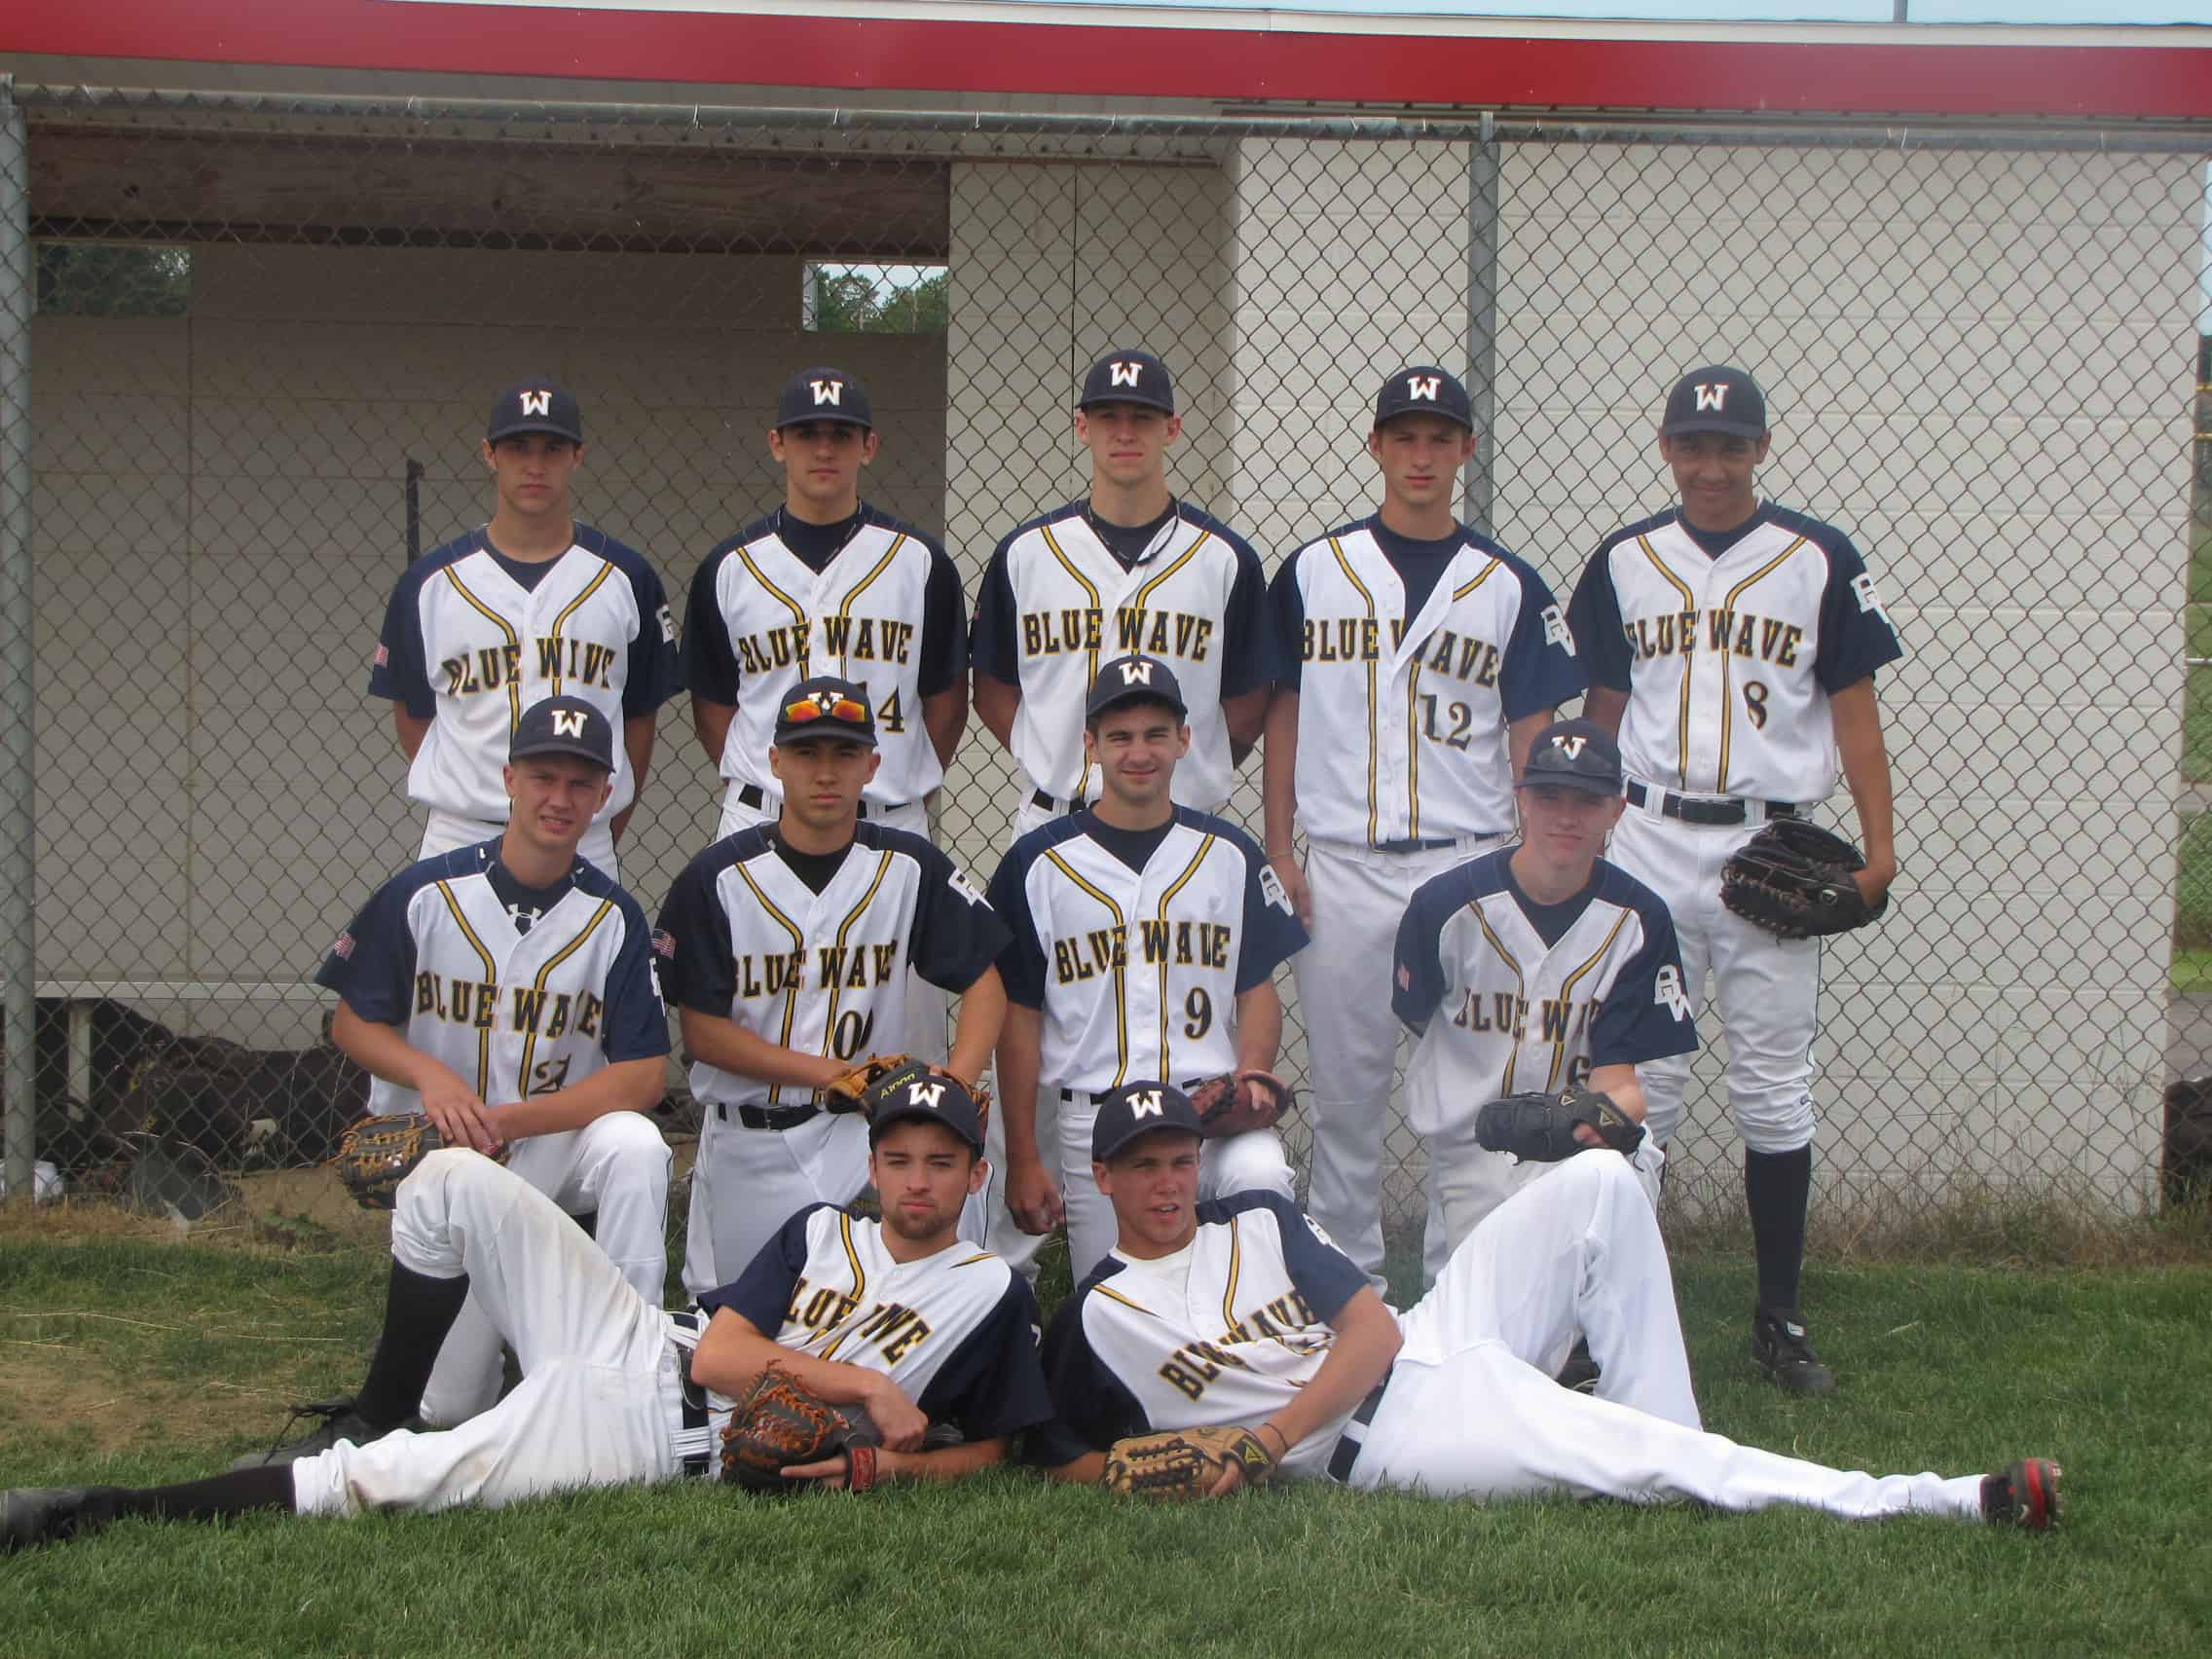 The Blue Claws! 2010 Bring Your 'A' Game 18U Champs!